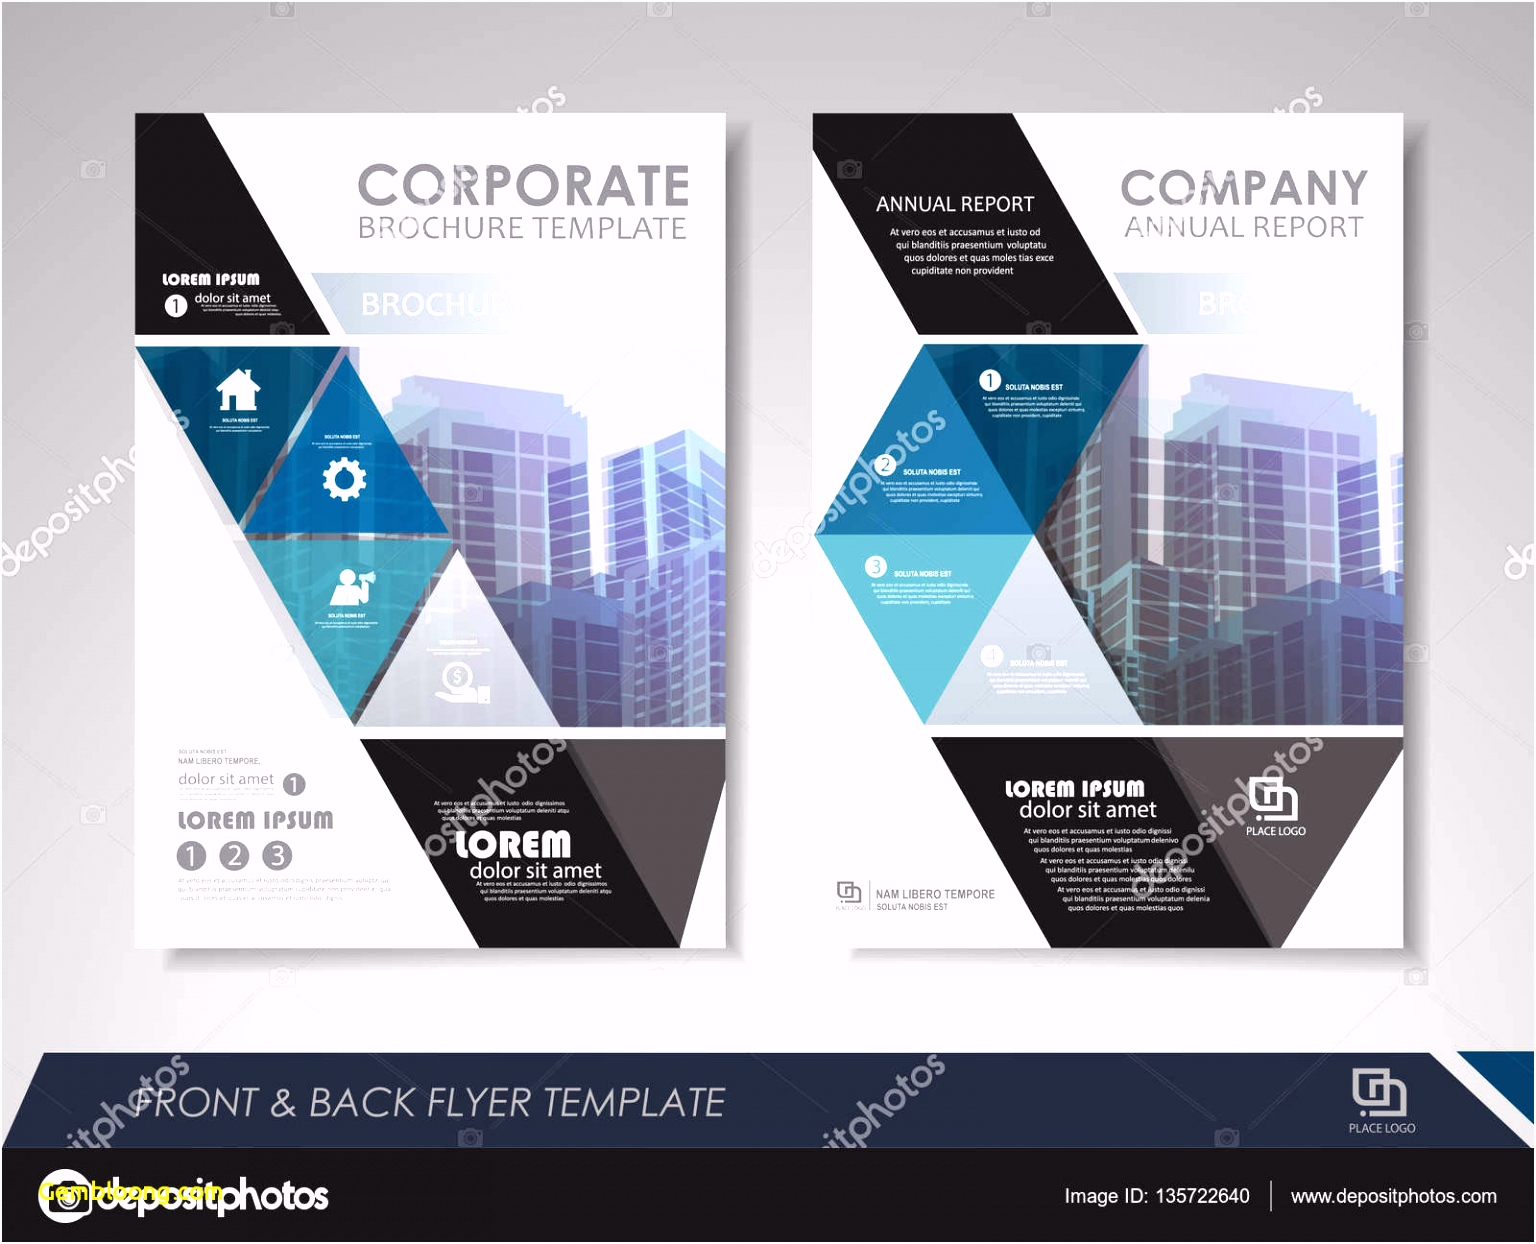 Illustrator Brochure Templates Forolab4